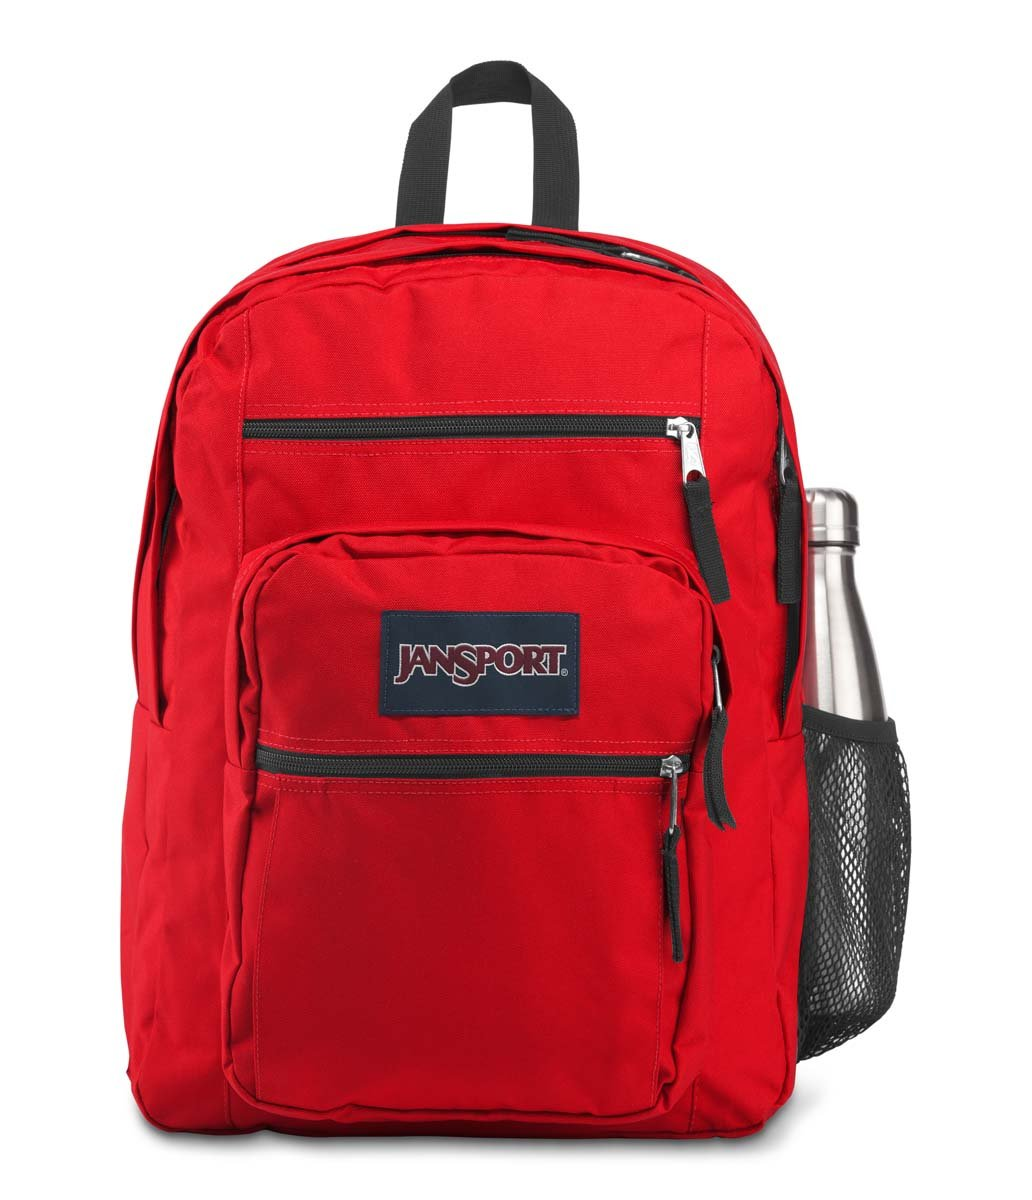 Jansport-Bigstudent Red tape